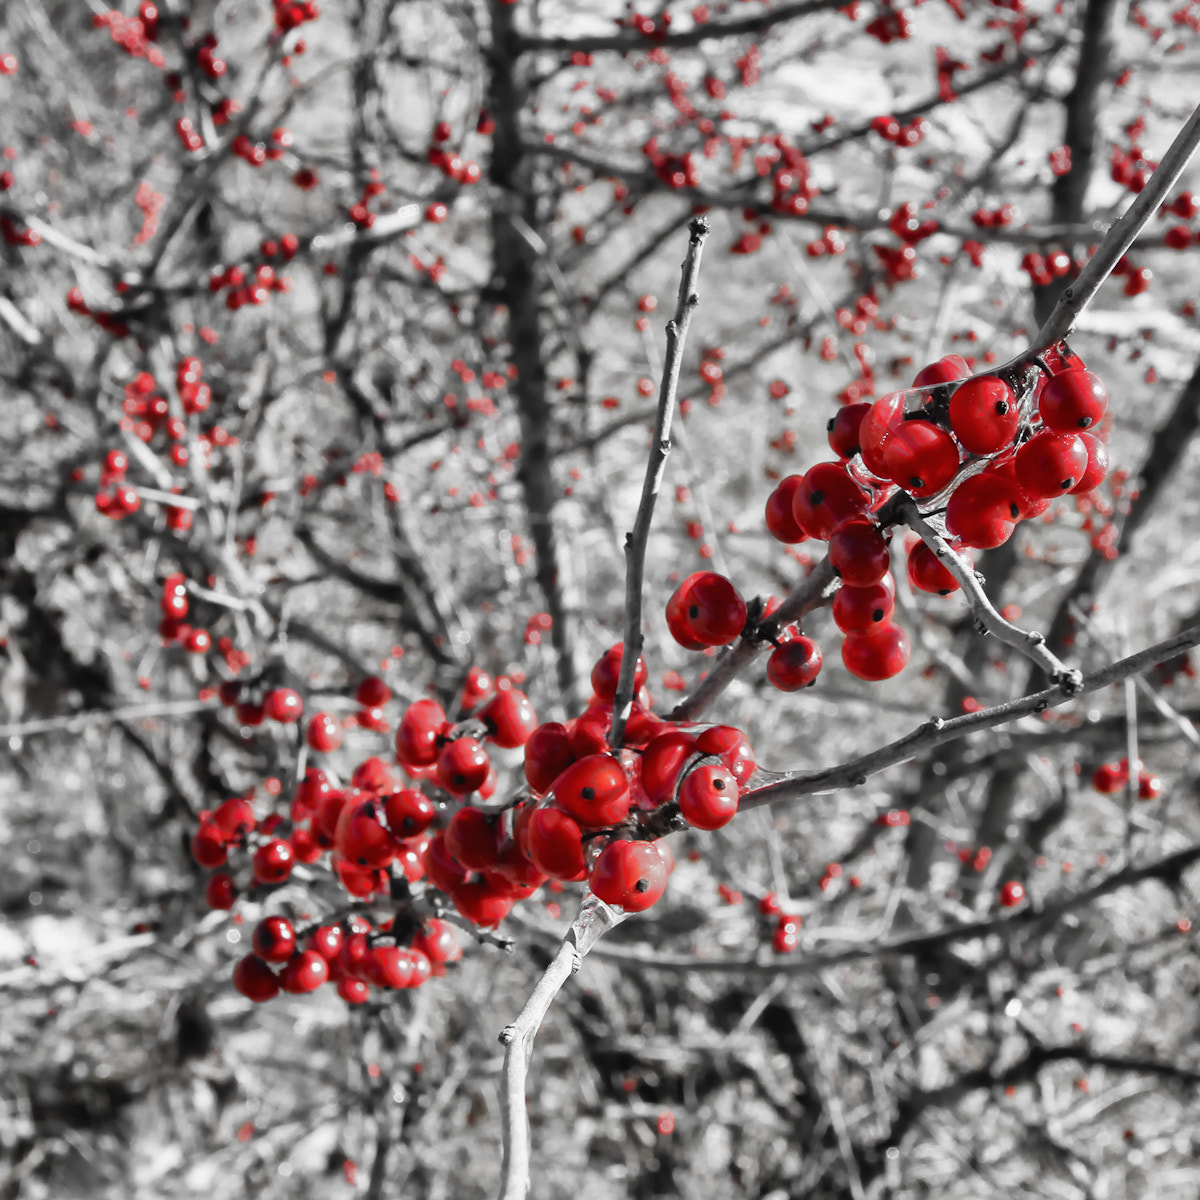 Photograph Holly Berries Shedding Ice by Jon Brisbin on 500px